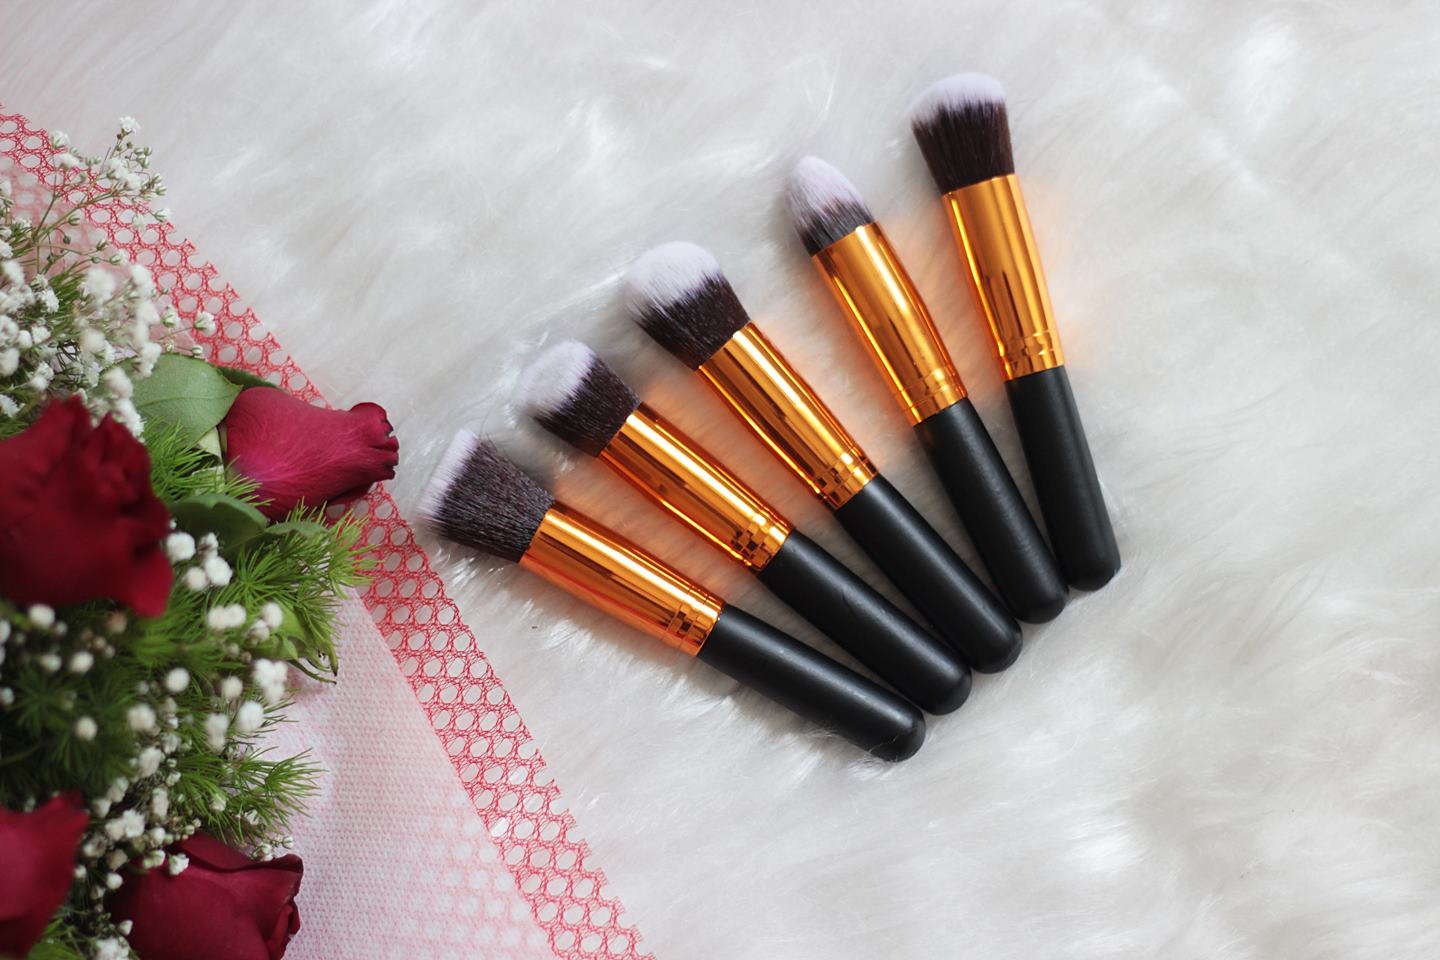 aliexpress-makeup-tools